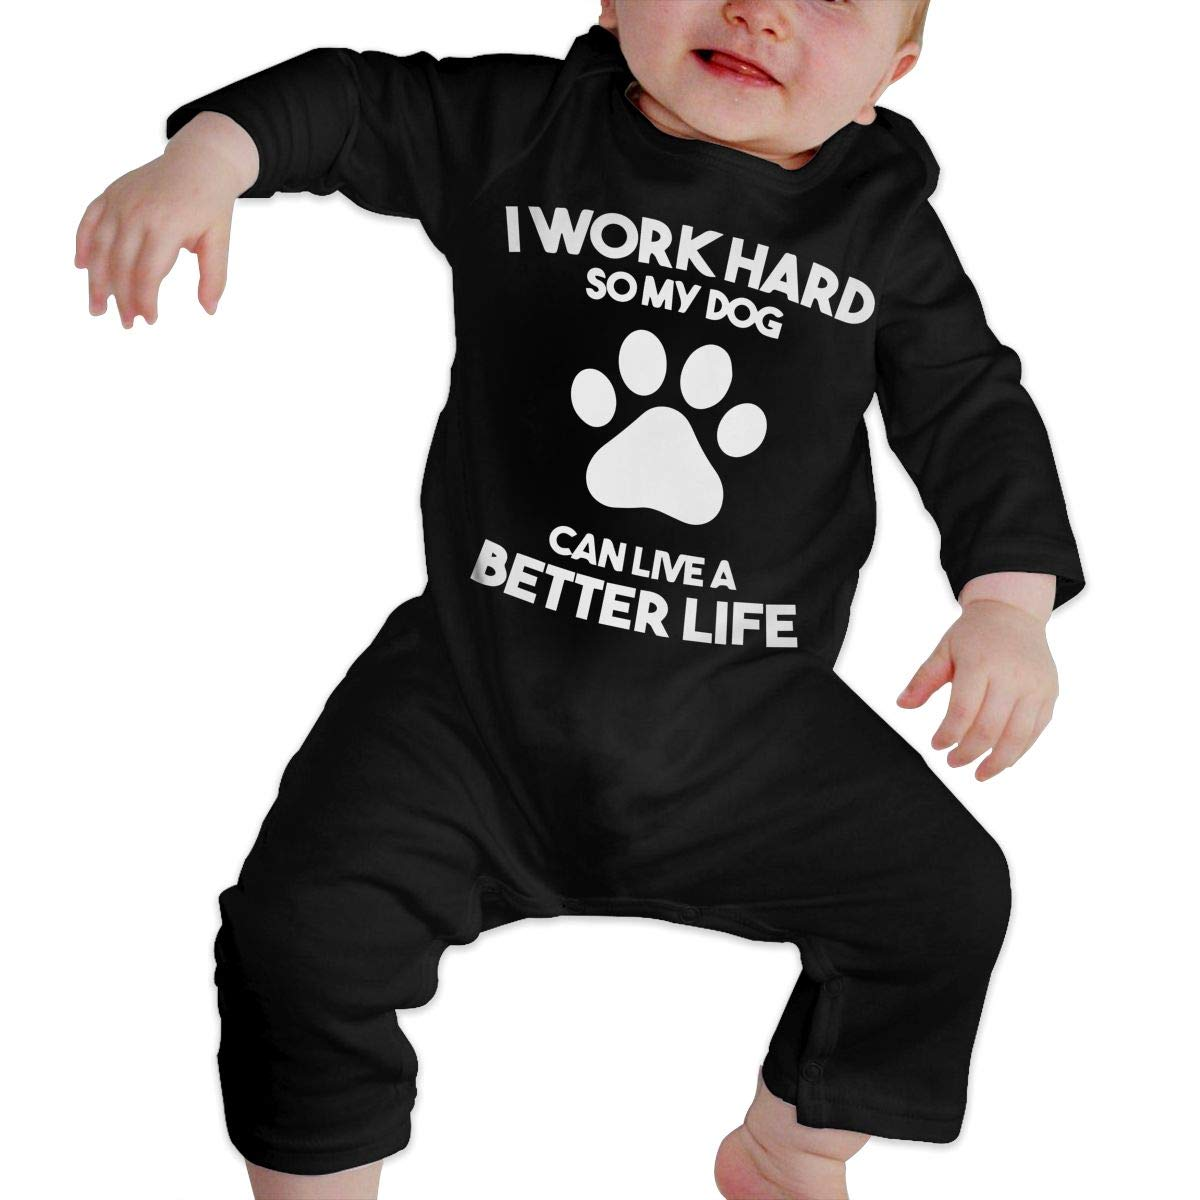 Printed Cotton Bodysuit Outfits Clothes Baby Boys Girls I Work Hard So My Dog Can Have A Better Life Long Sleeve Bodysuit